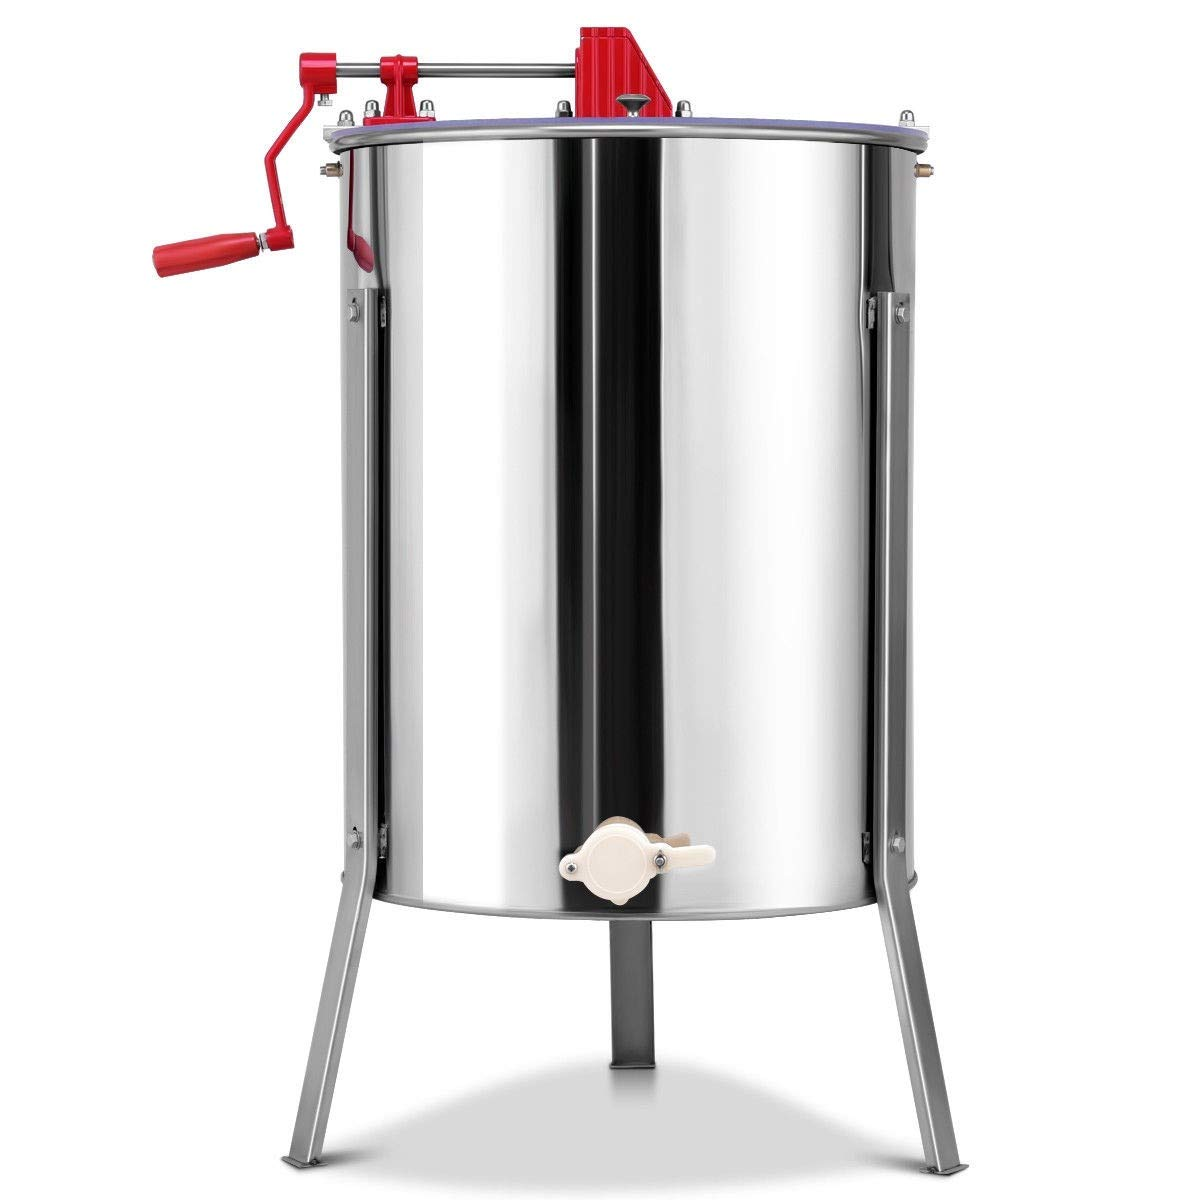 MD Group Stainless Steel Large 4/8 Frame Honey Extractor